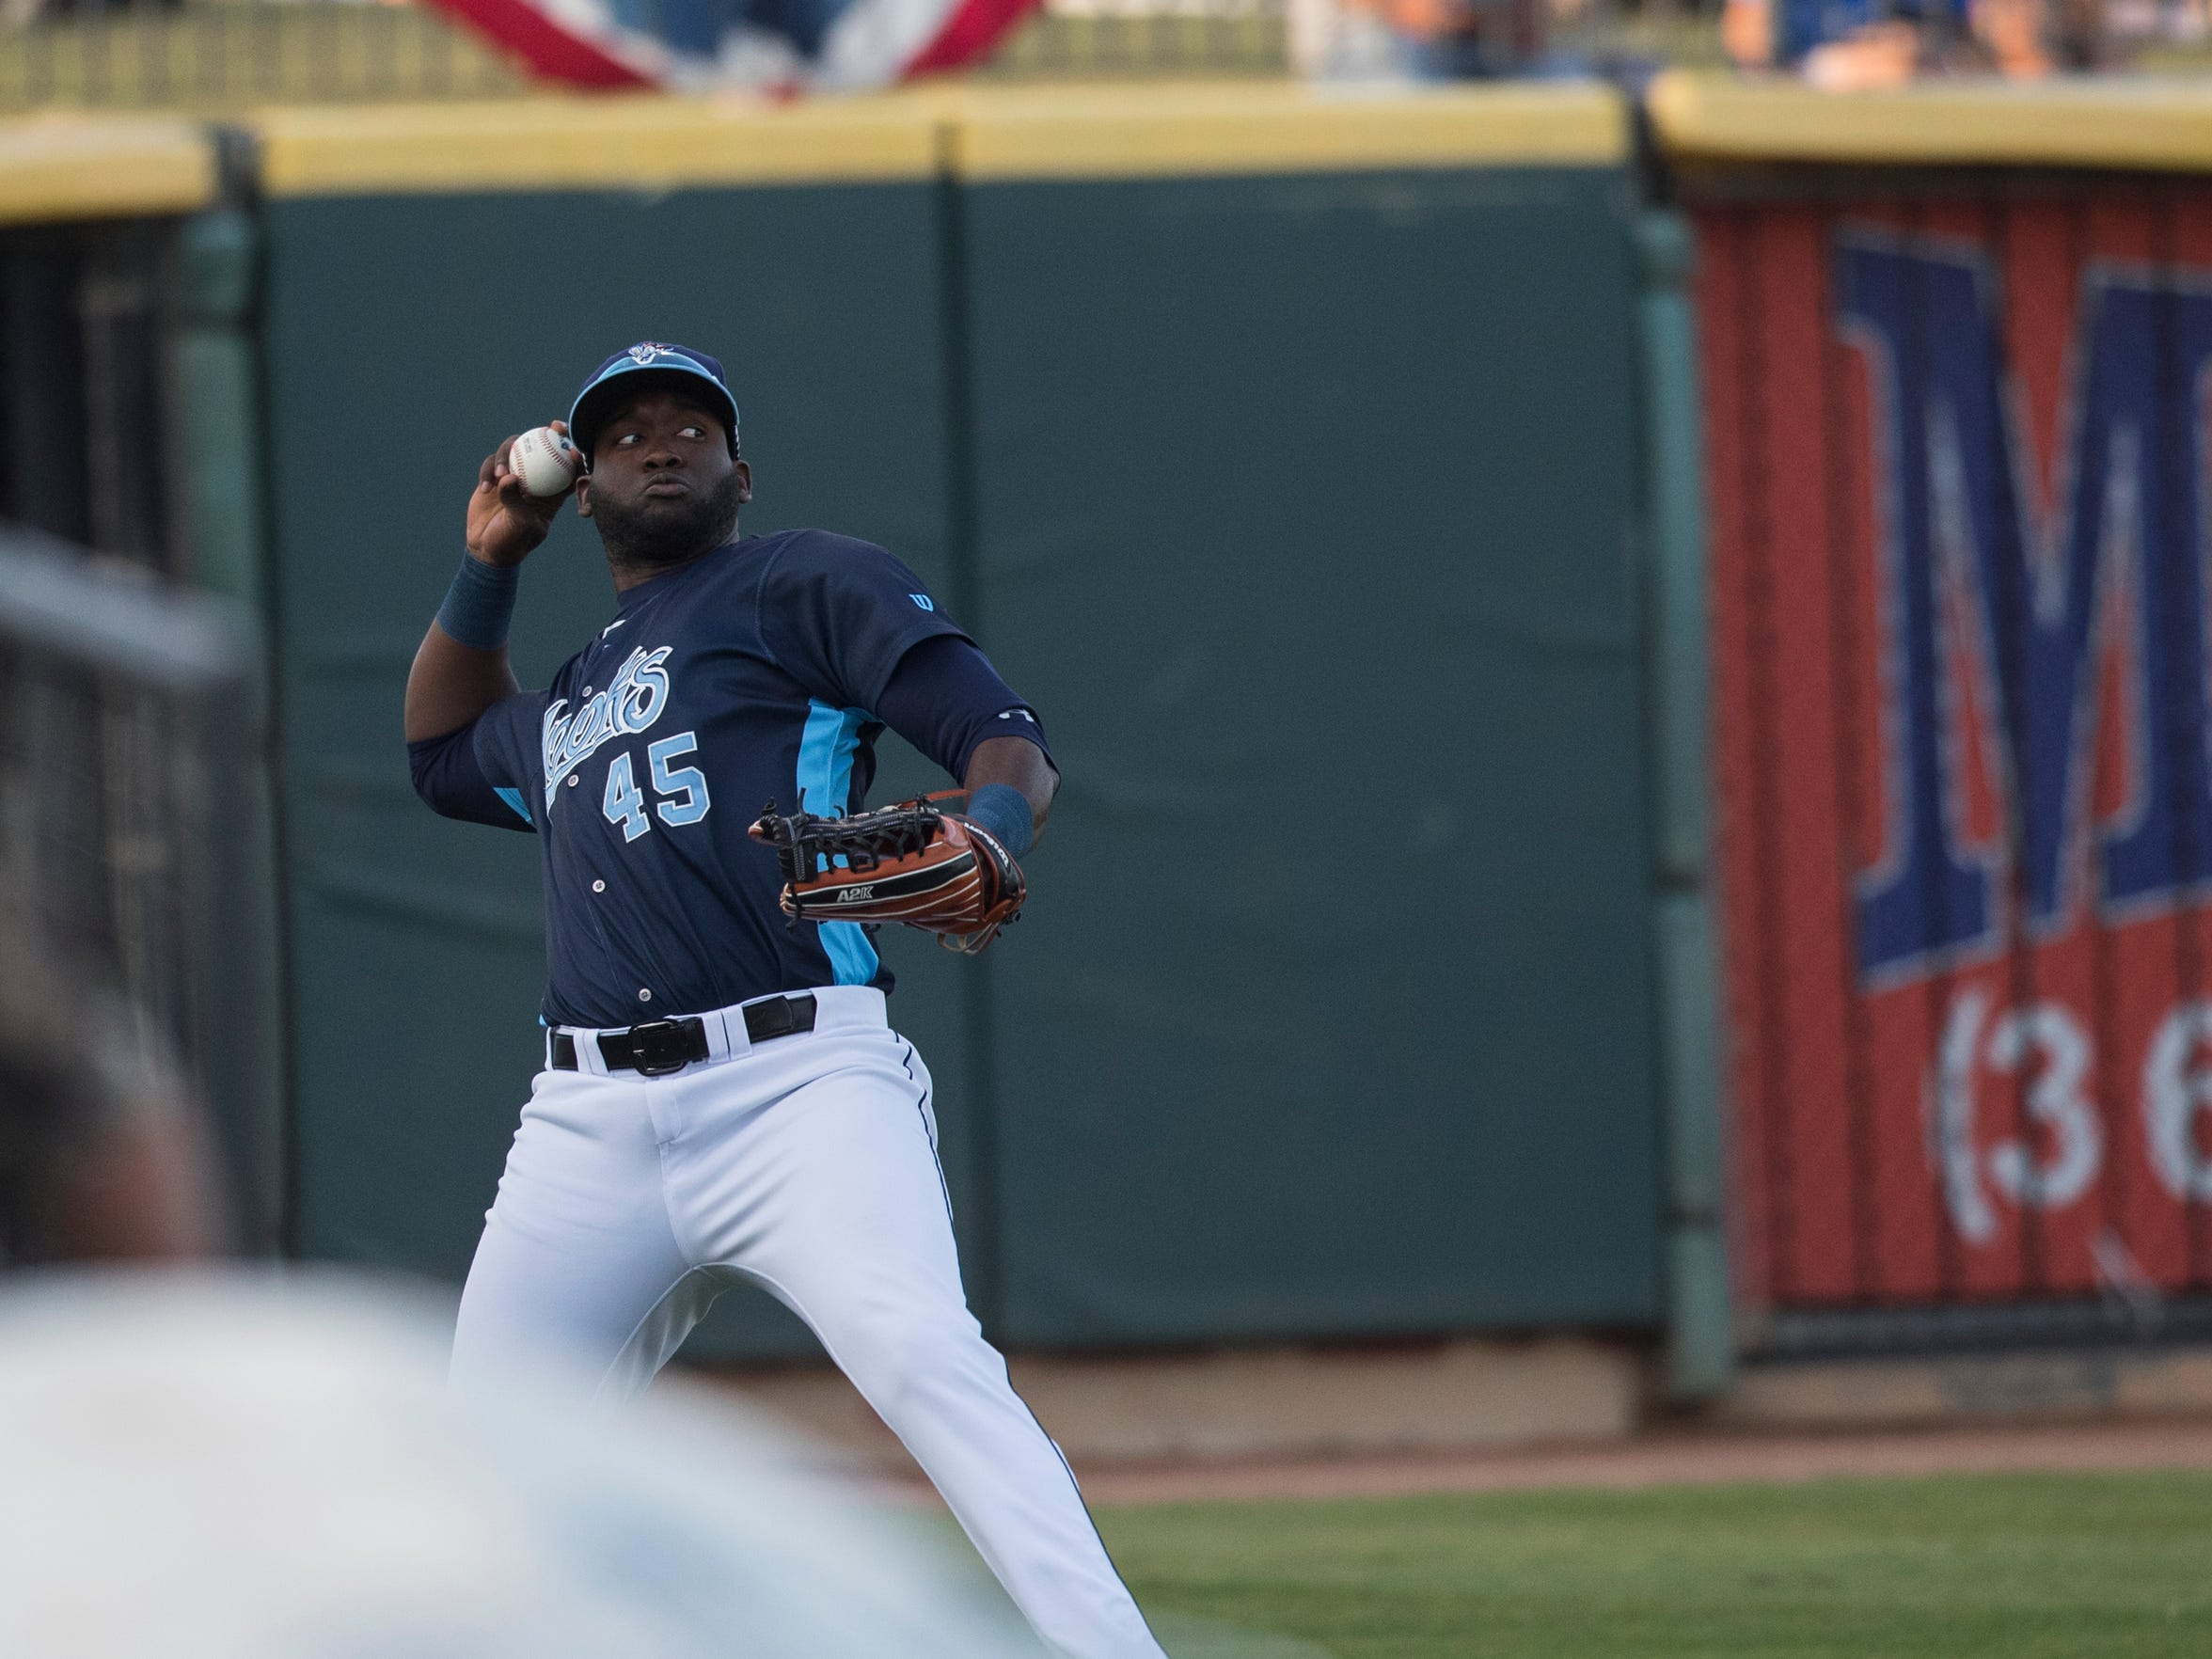 Hook's Yordan Alvarez  throws the ball from the outfield during their season opener against Northwest Arkansas Naturals on Thursday, April 12, 2018 at Whataburger field.